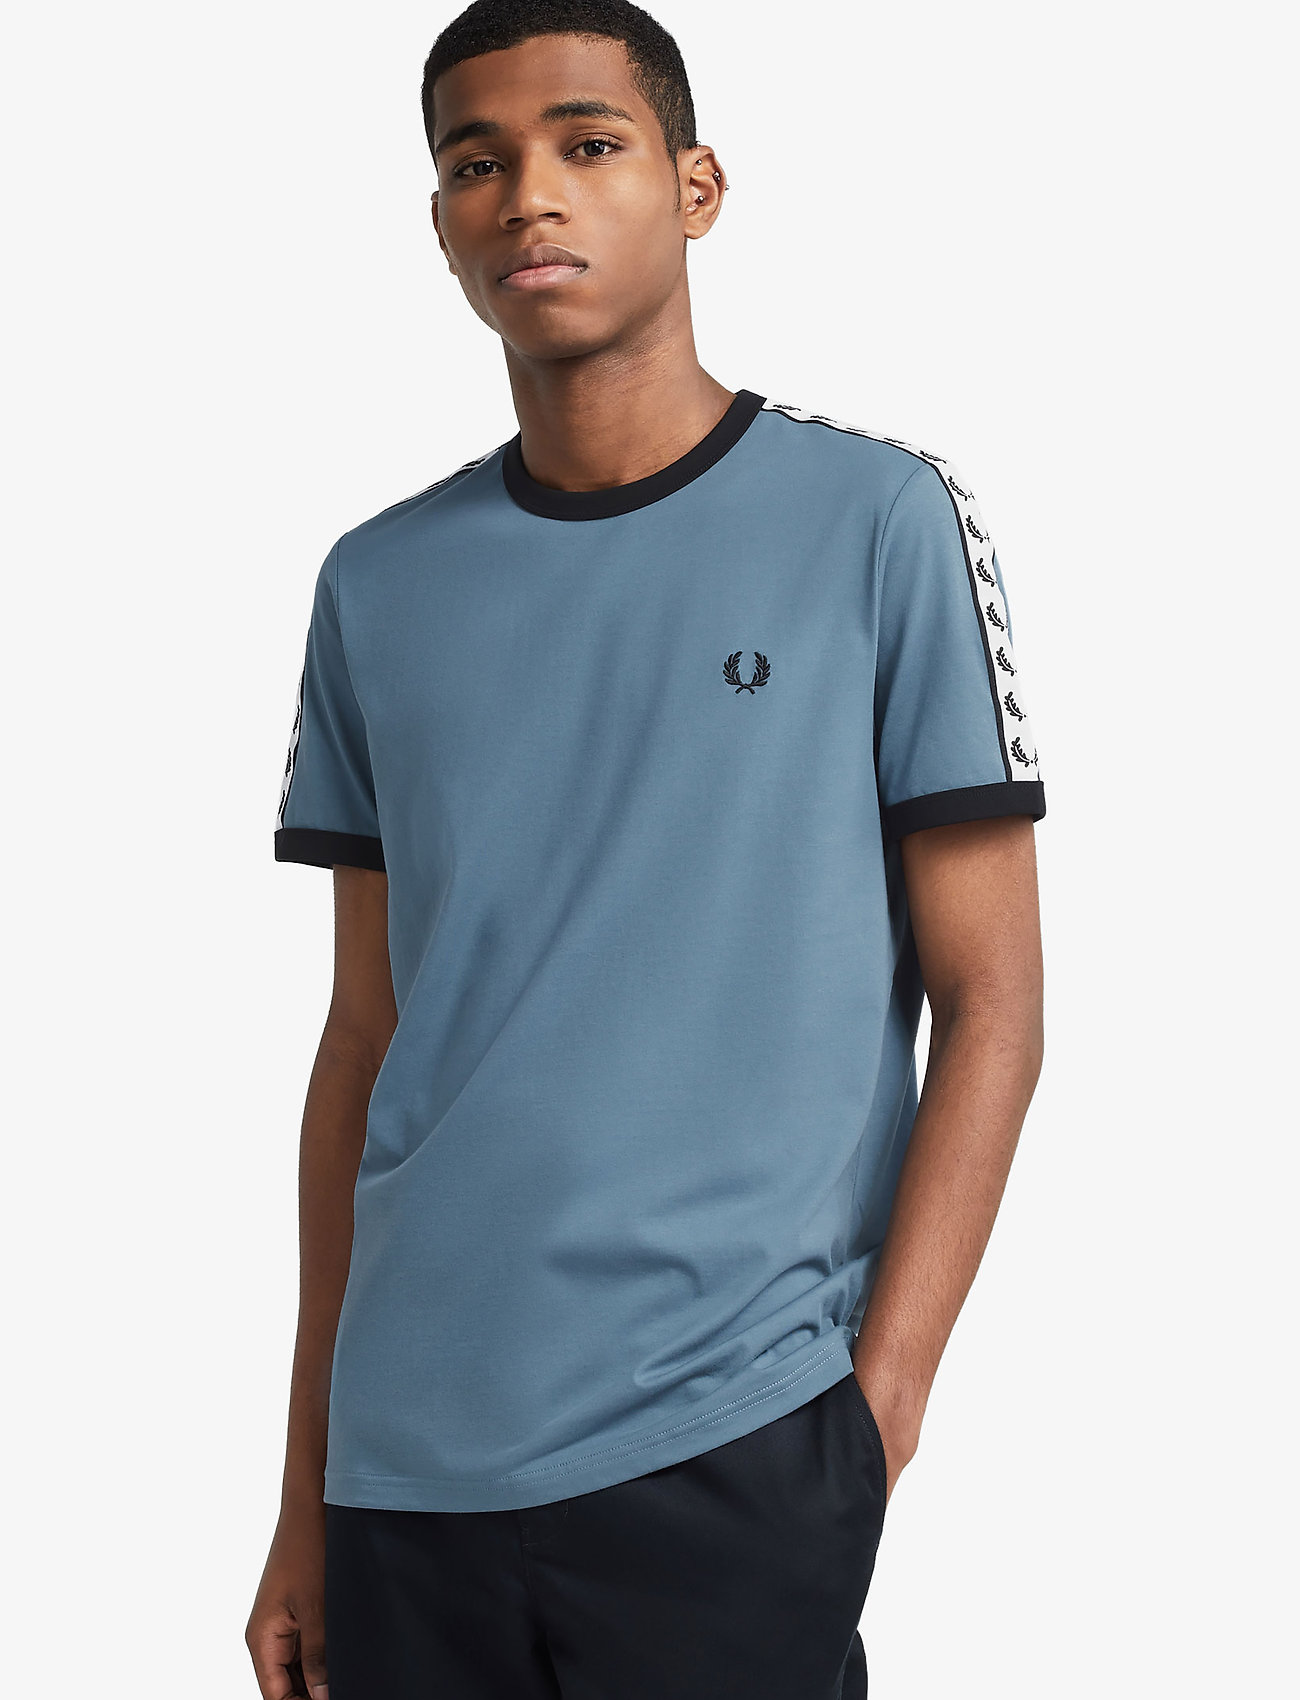 Green RING T-SHIRT  Fred Perry  T-shirts